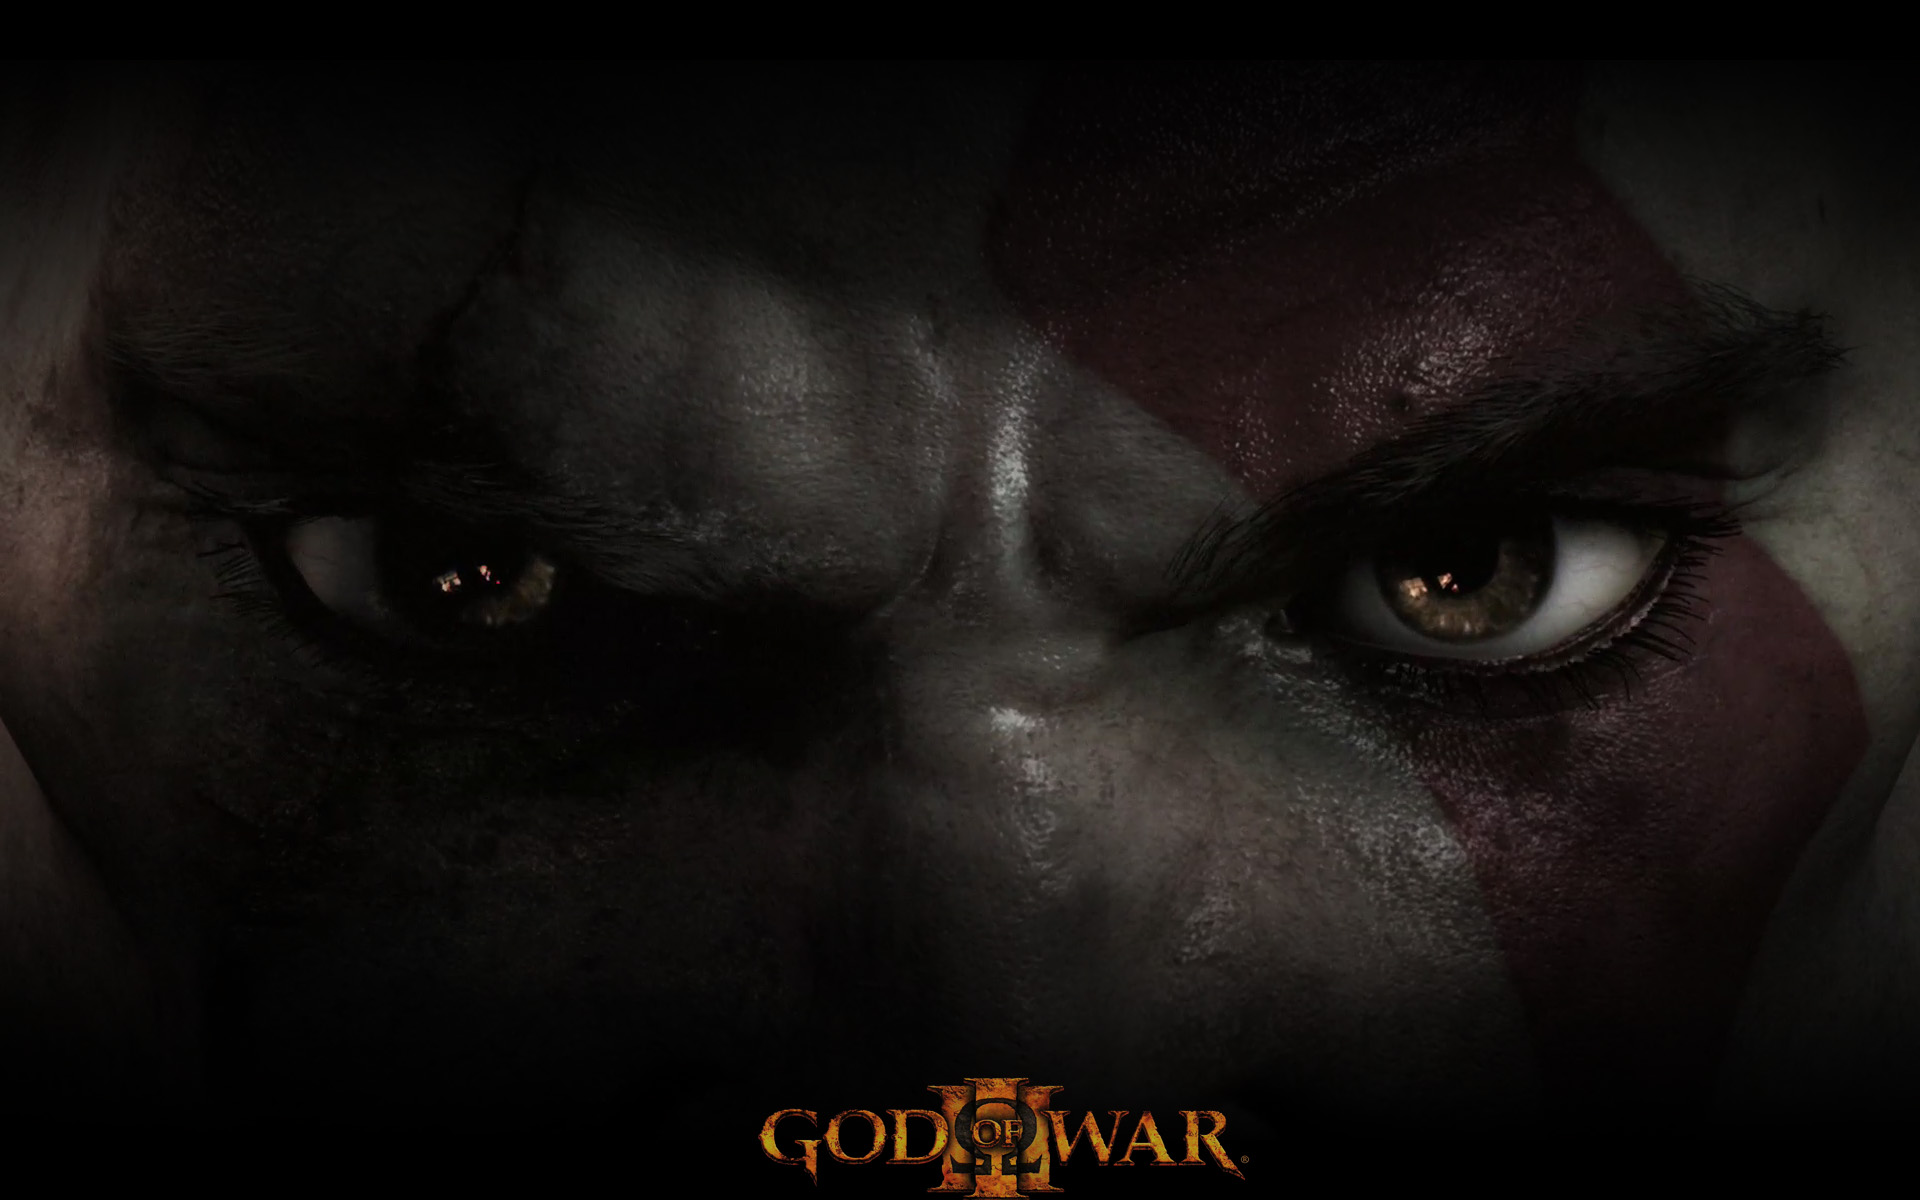 Welcome to our God of War 3 wallpapers